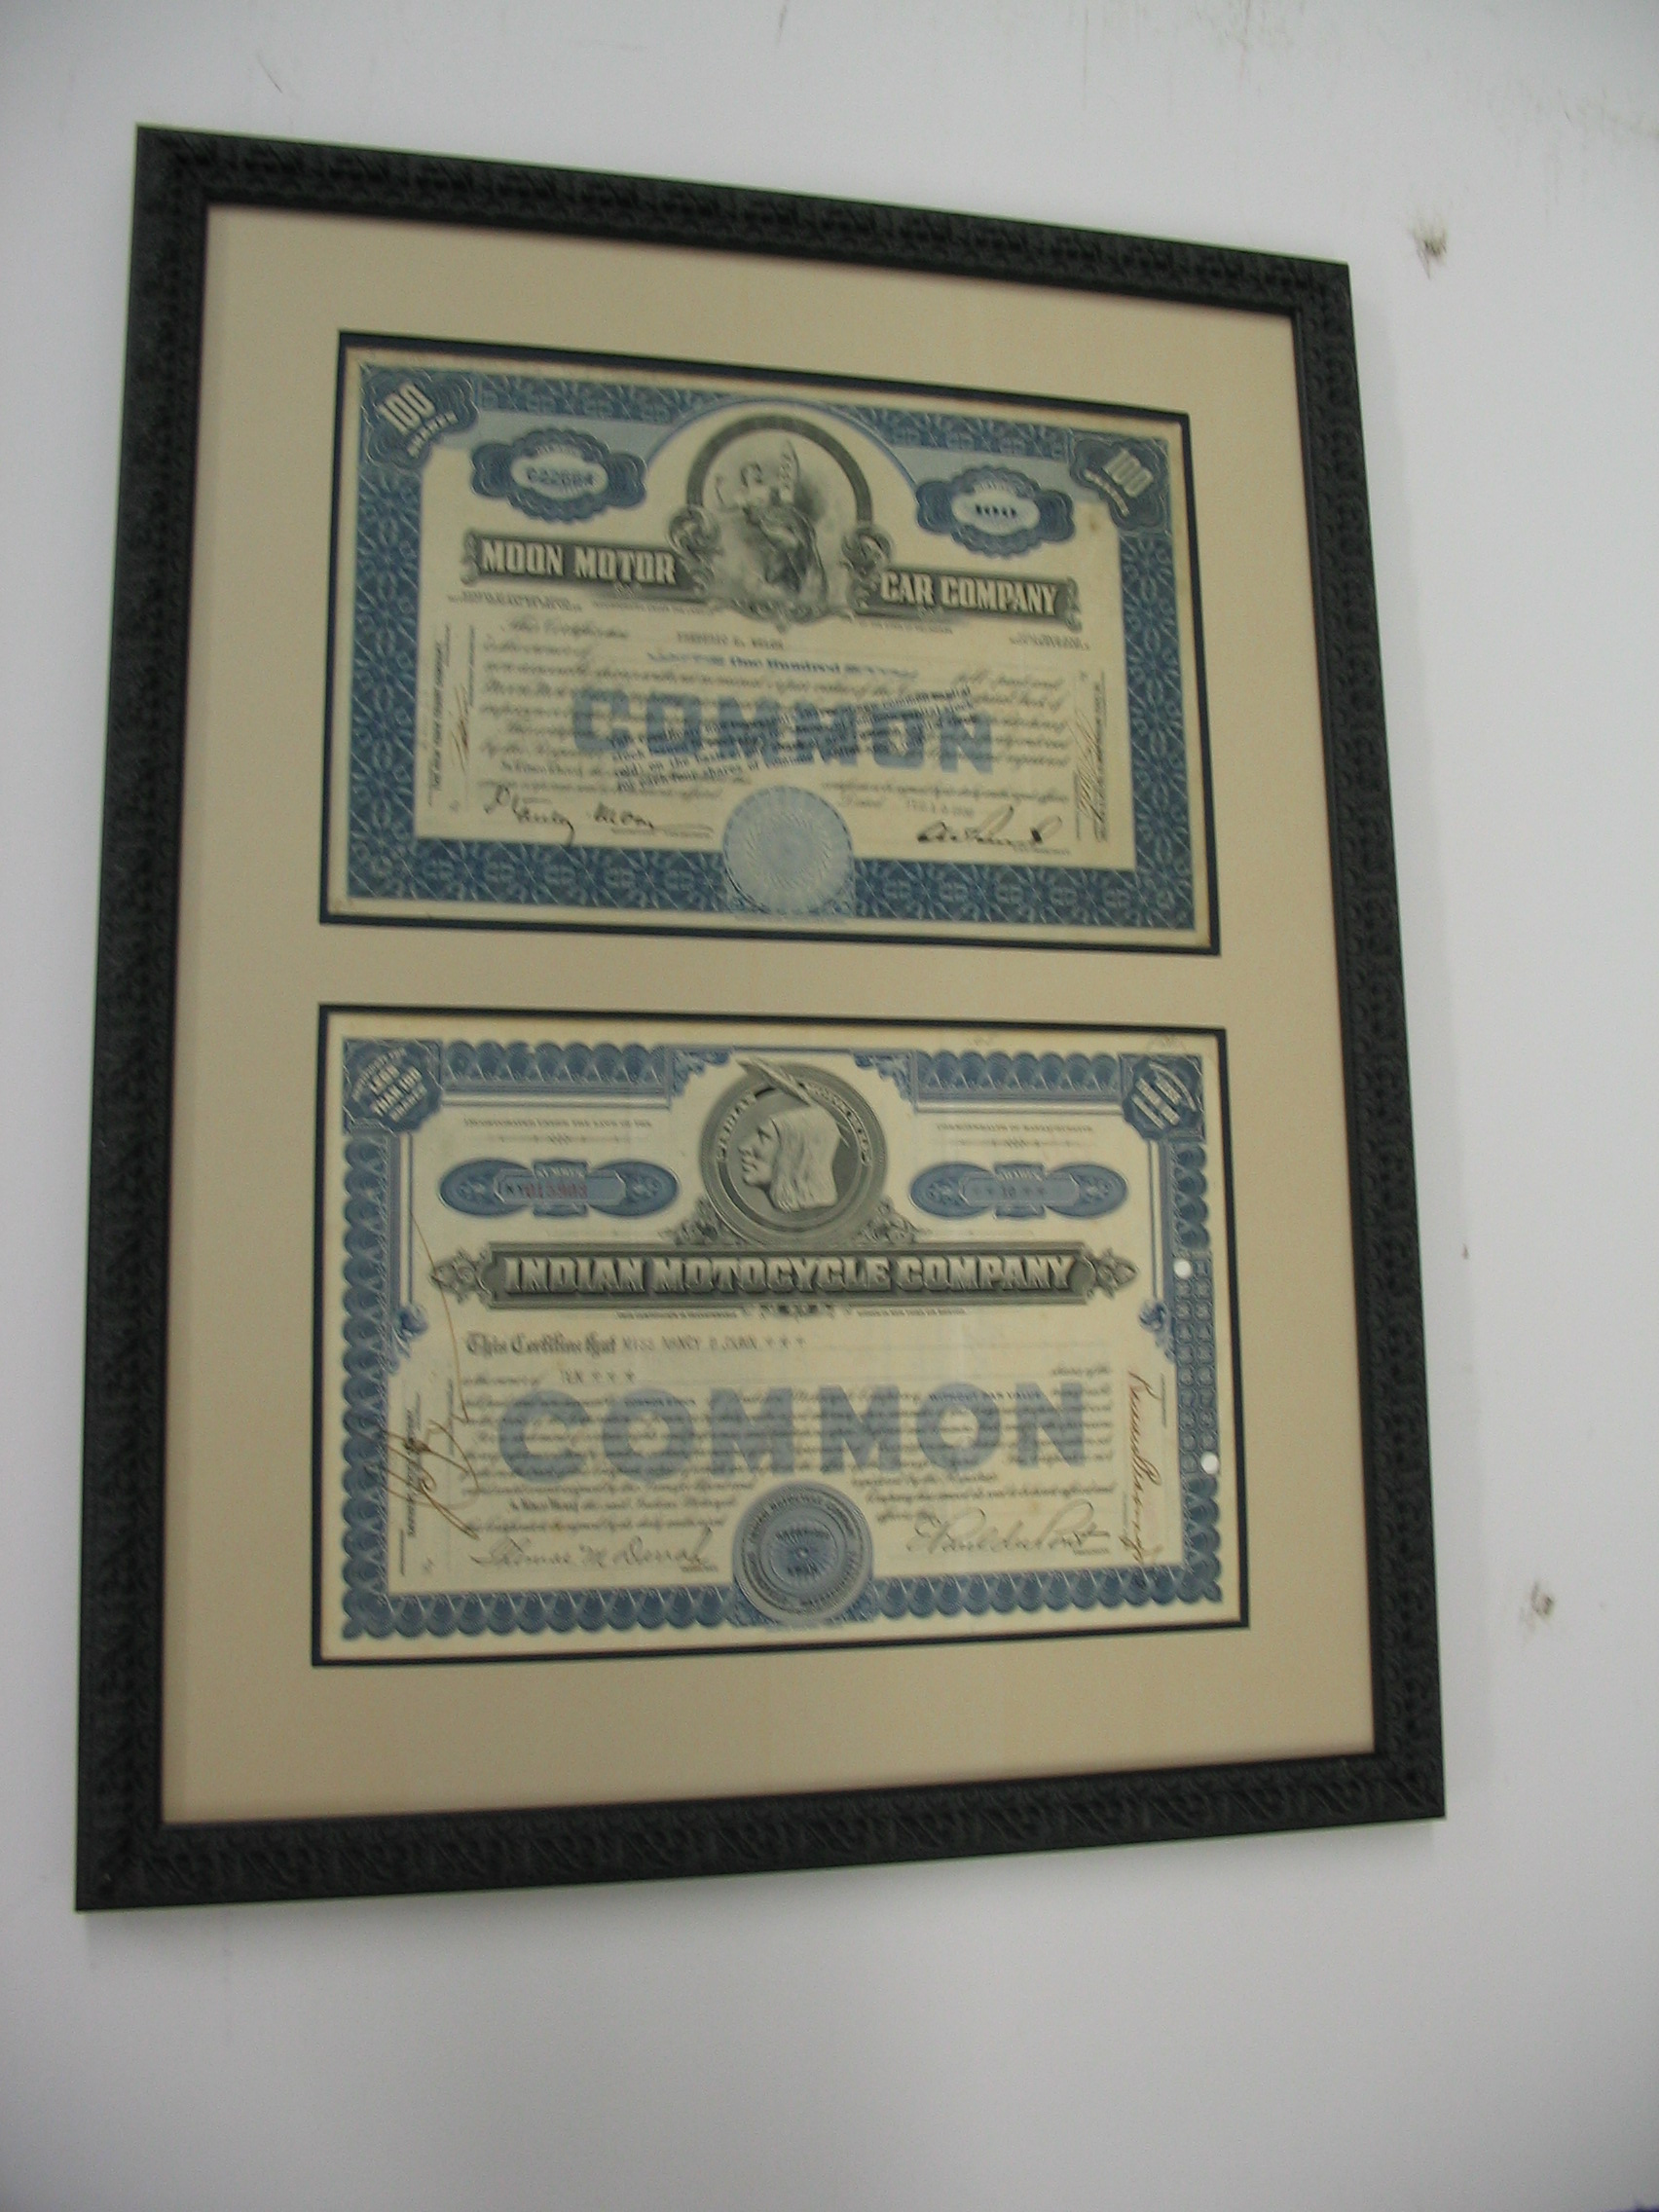 Documents framed by The Framemakers